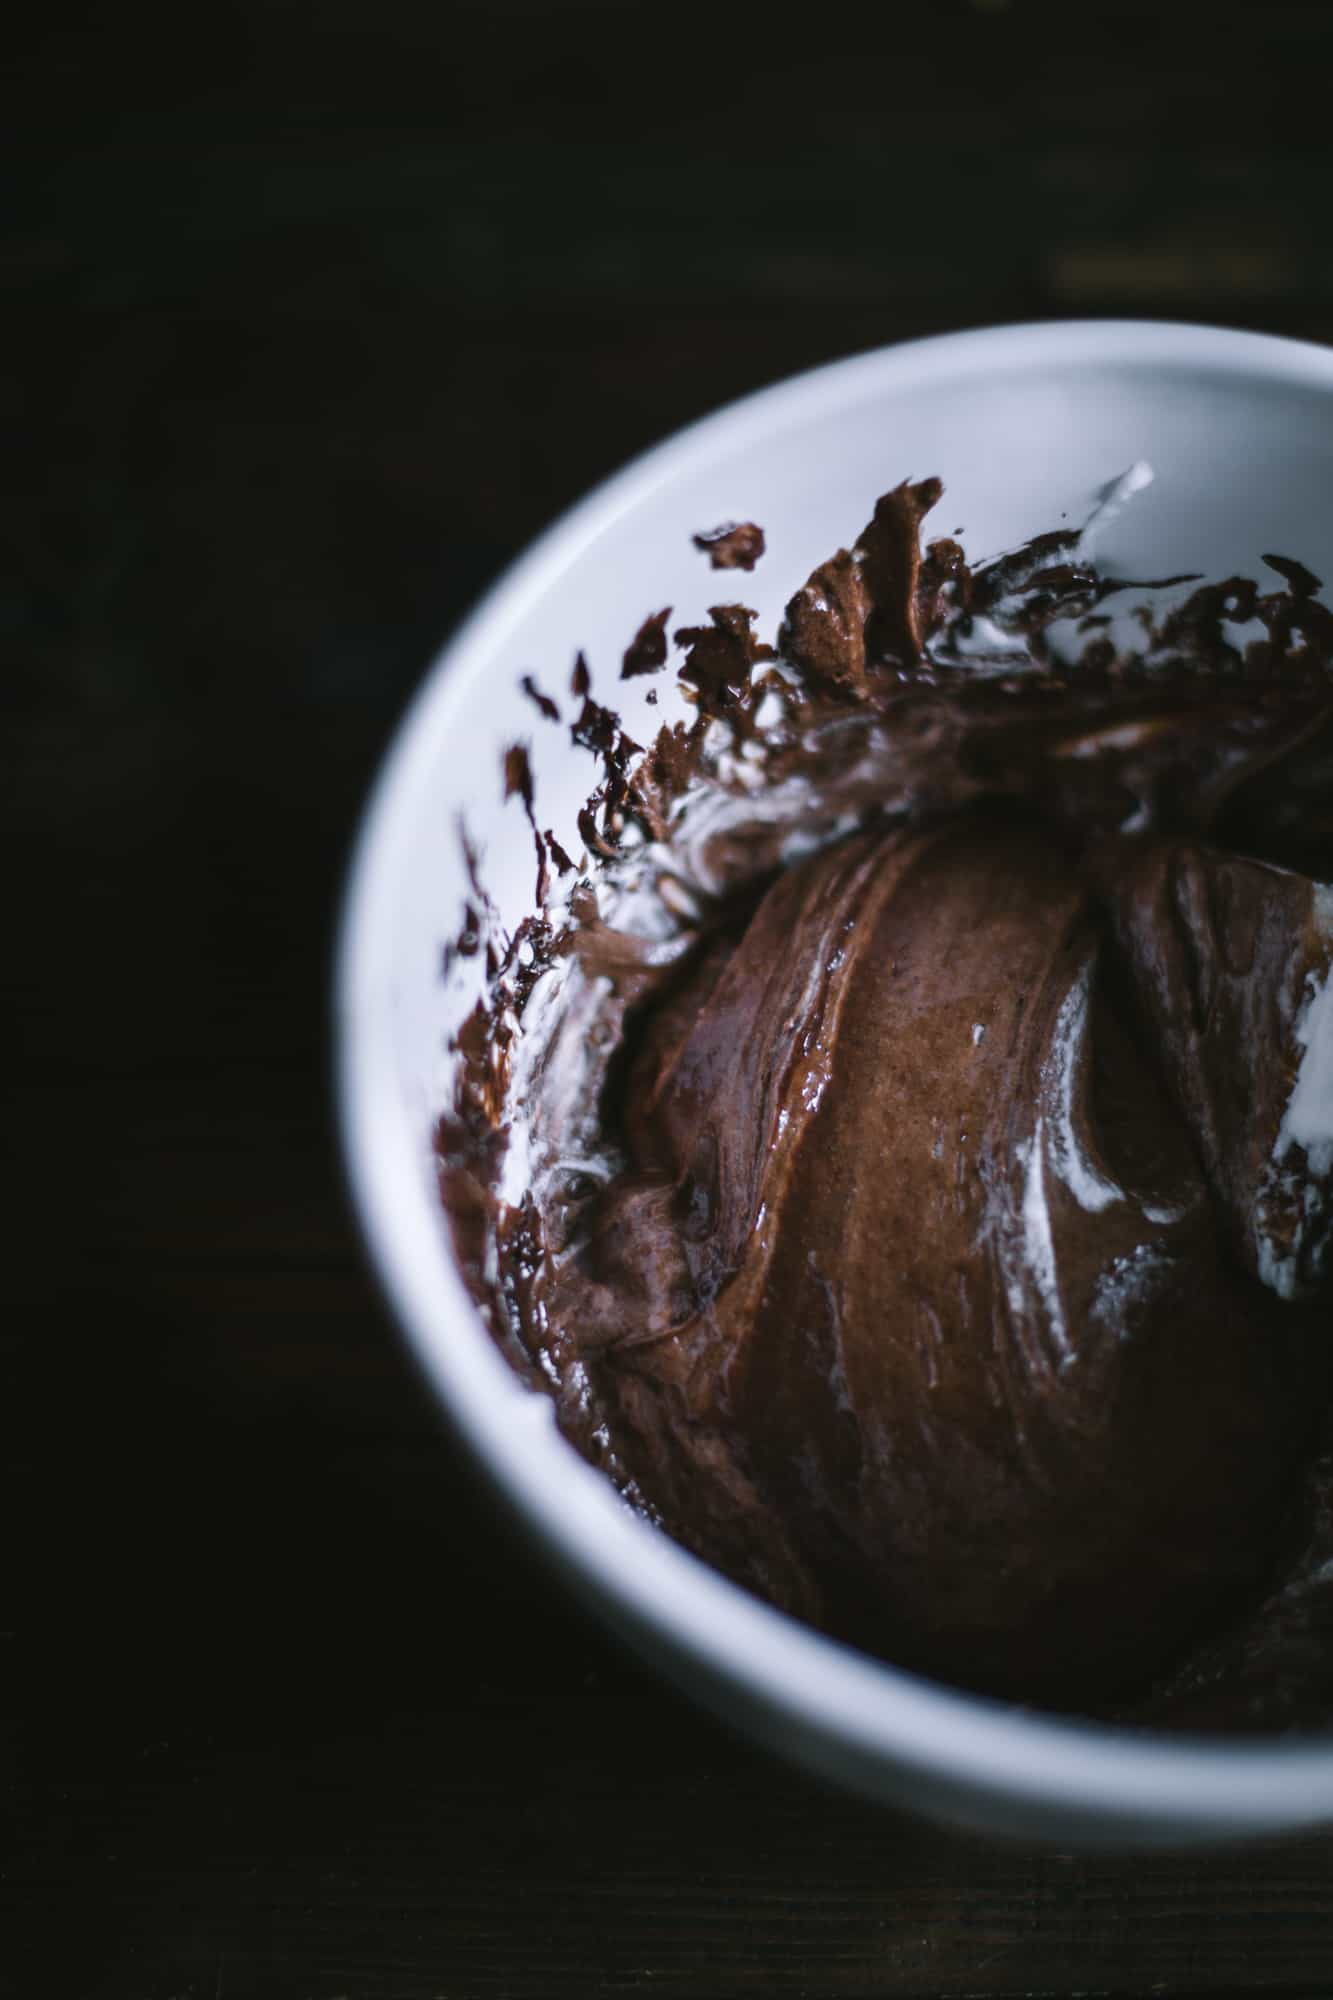 Spiced Coffee and Chocolate Mousse by Eva Kosmas Flores